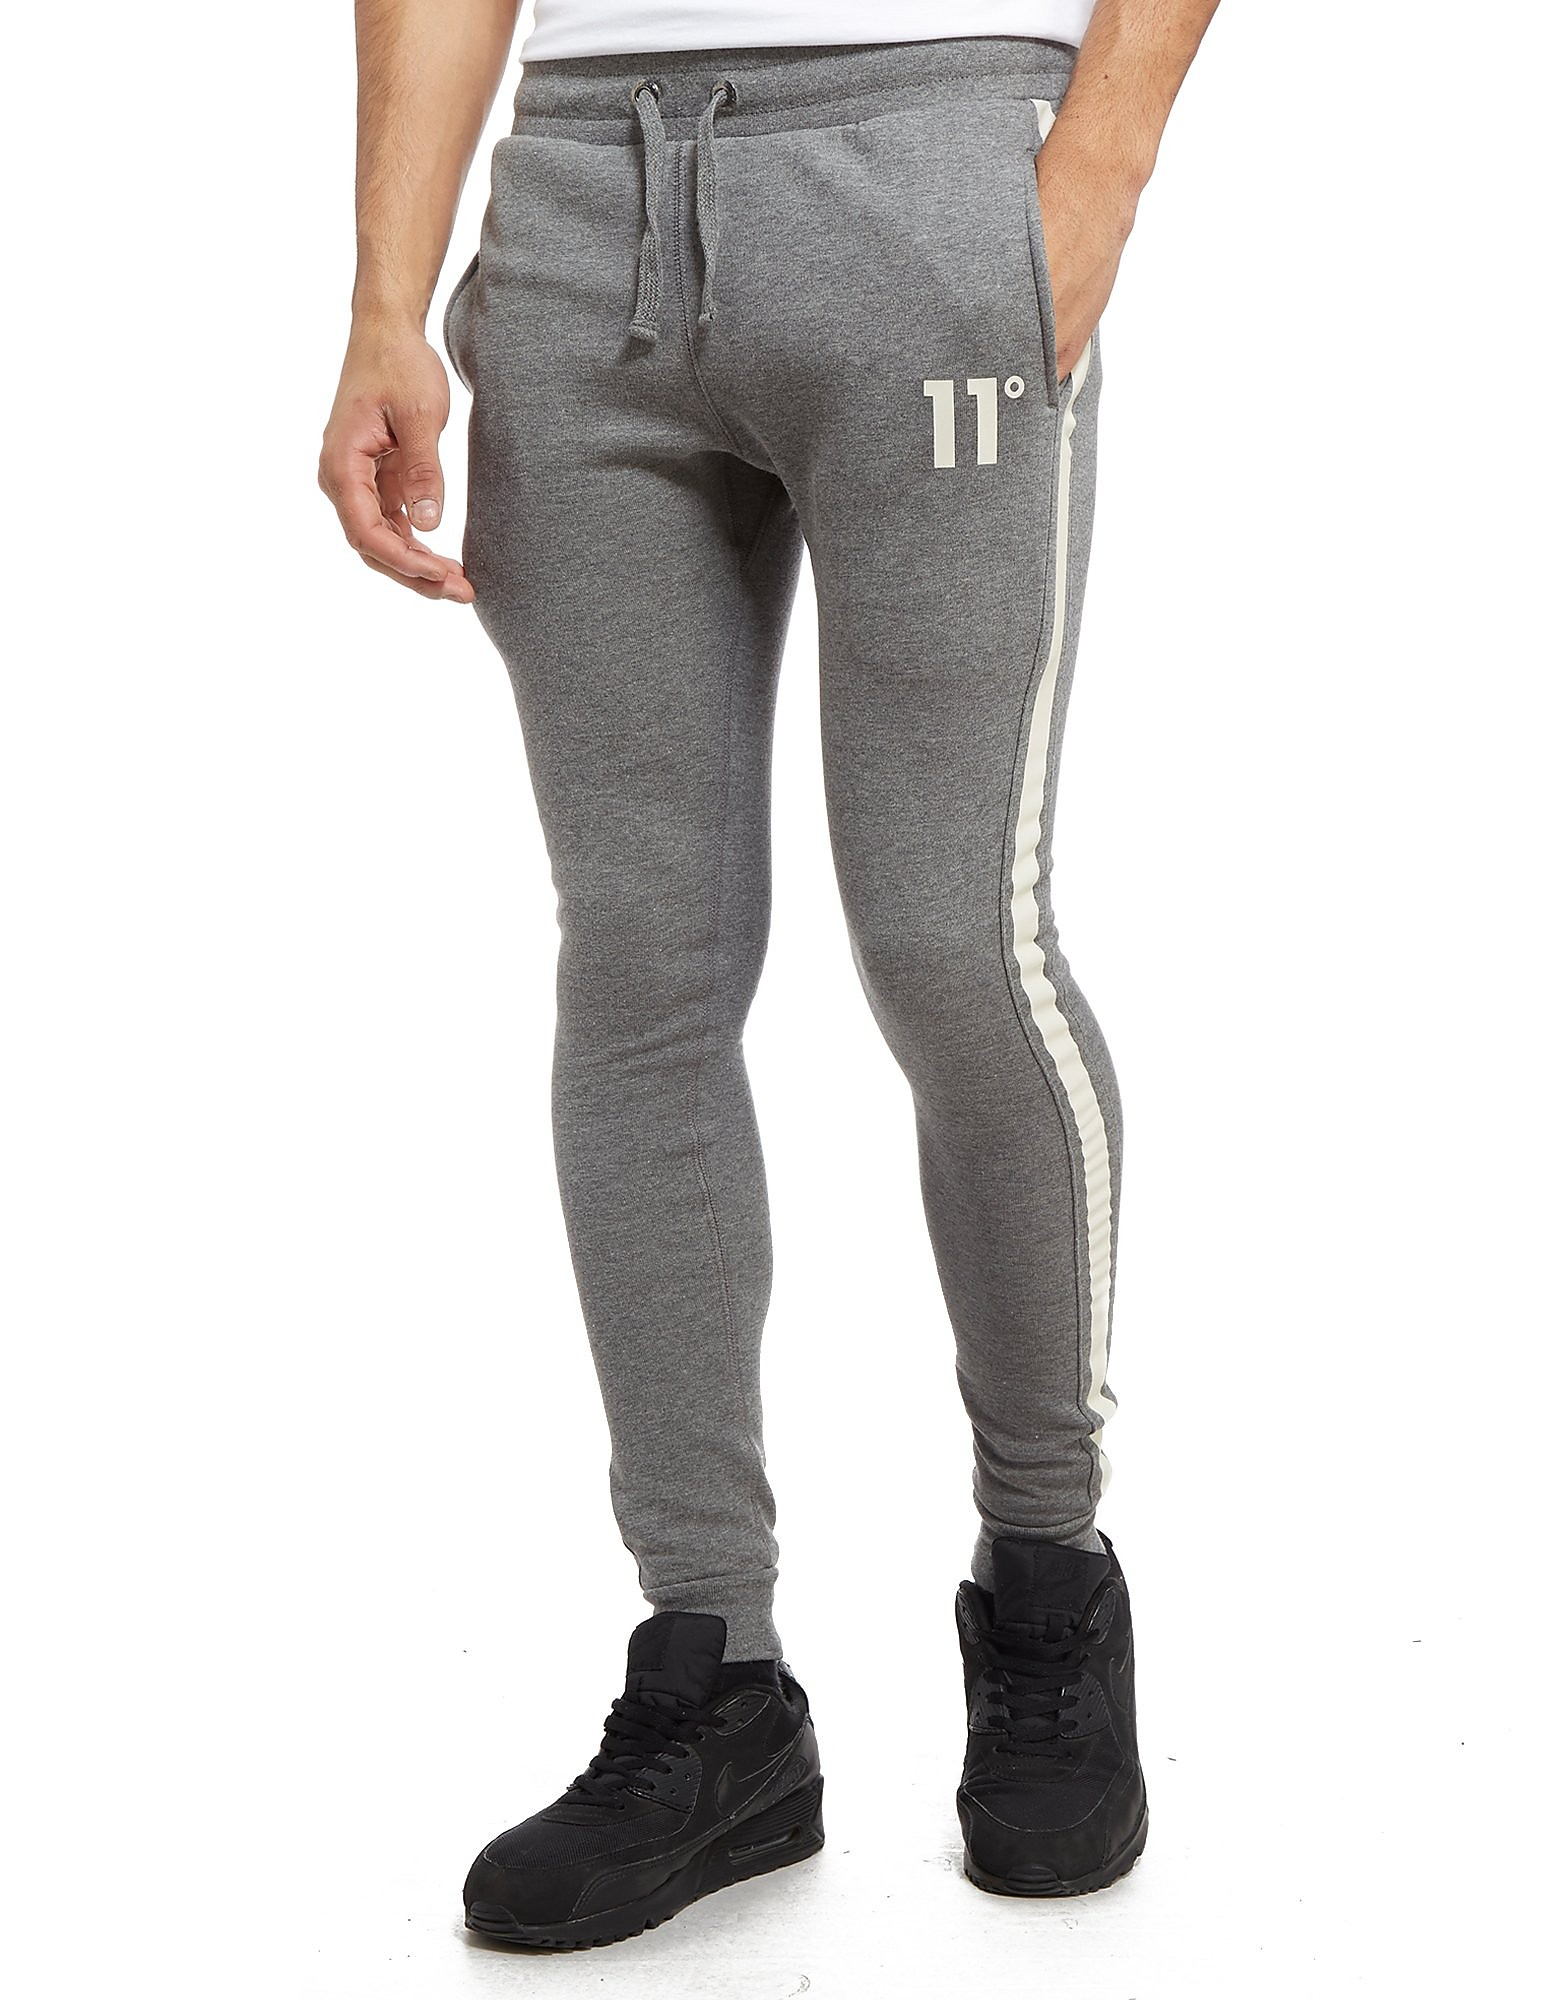 11 Degrees Reflective Fleece Pants